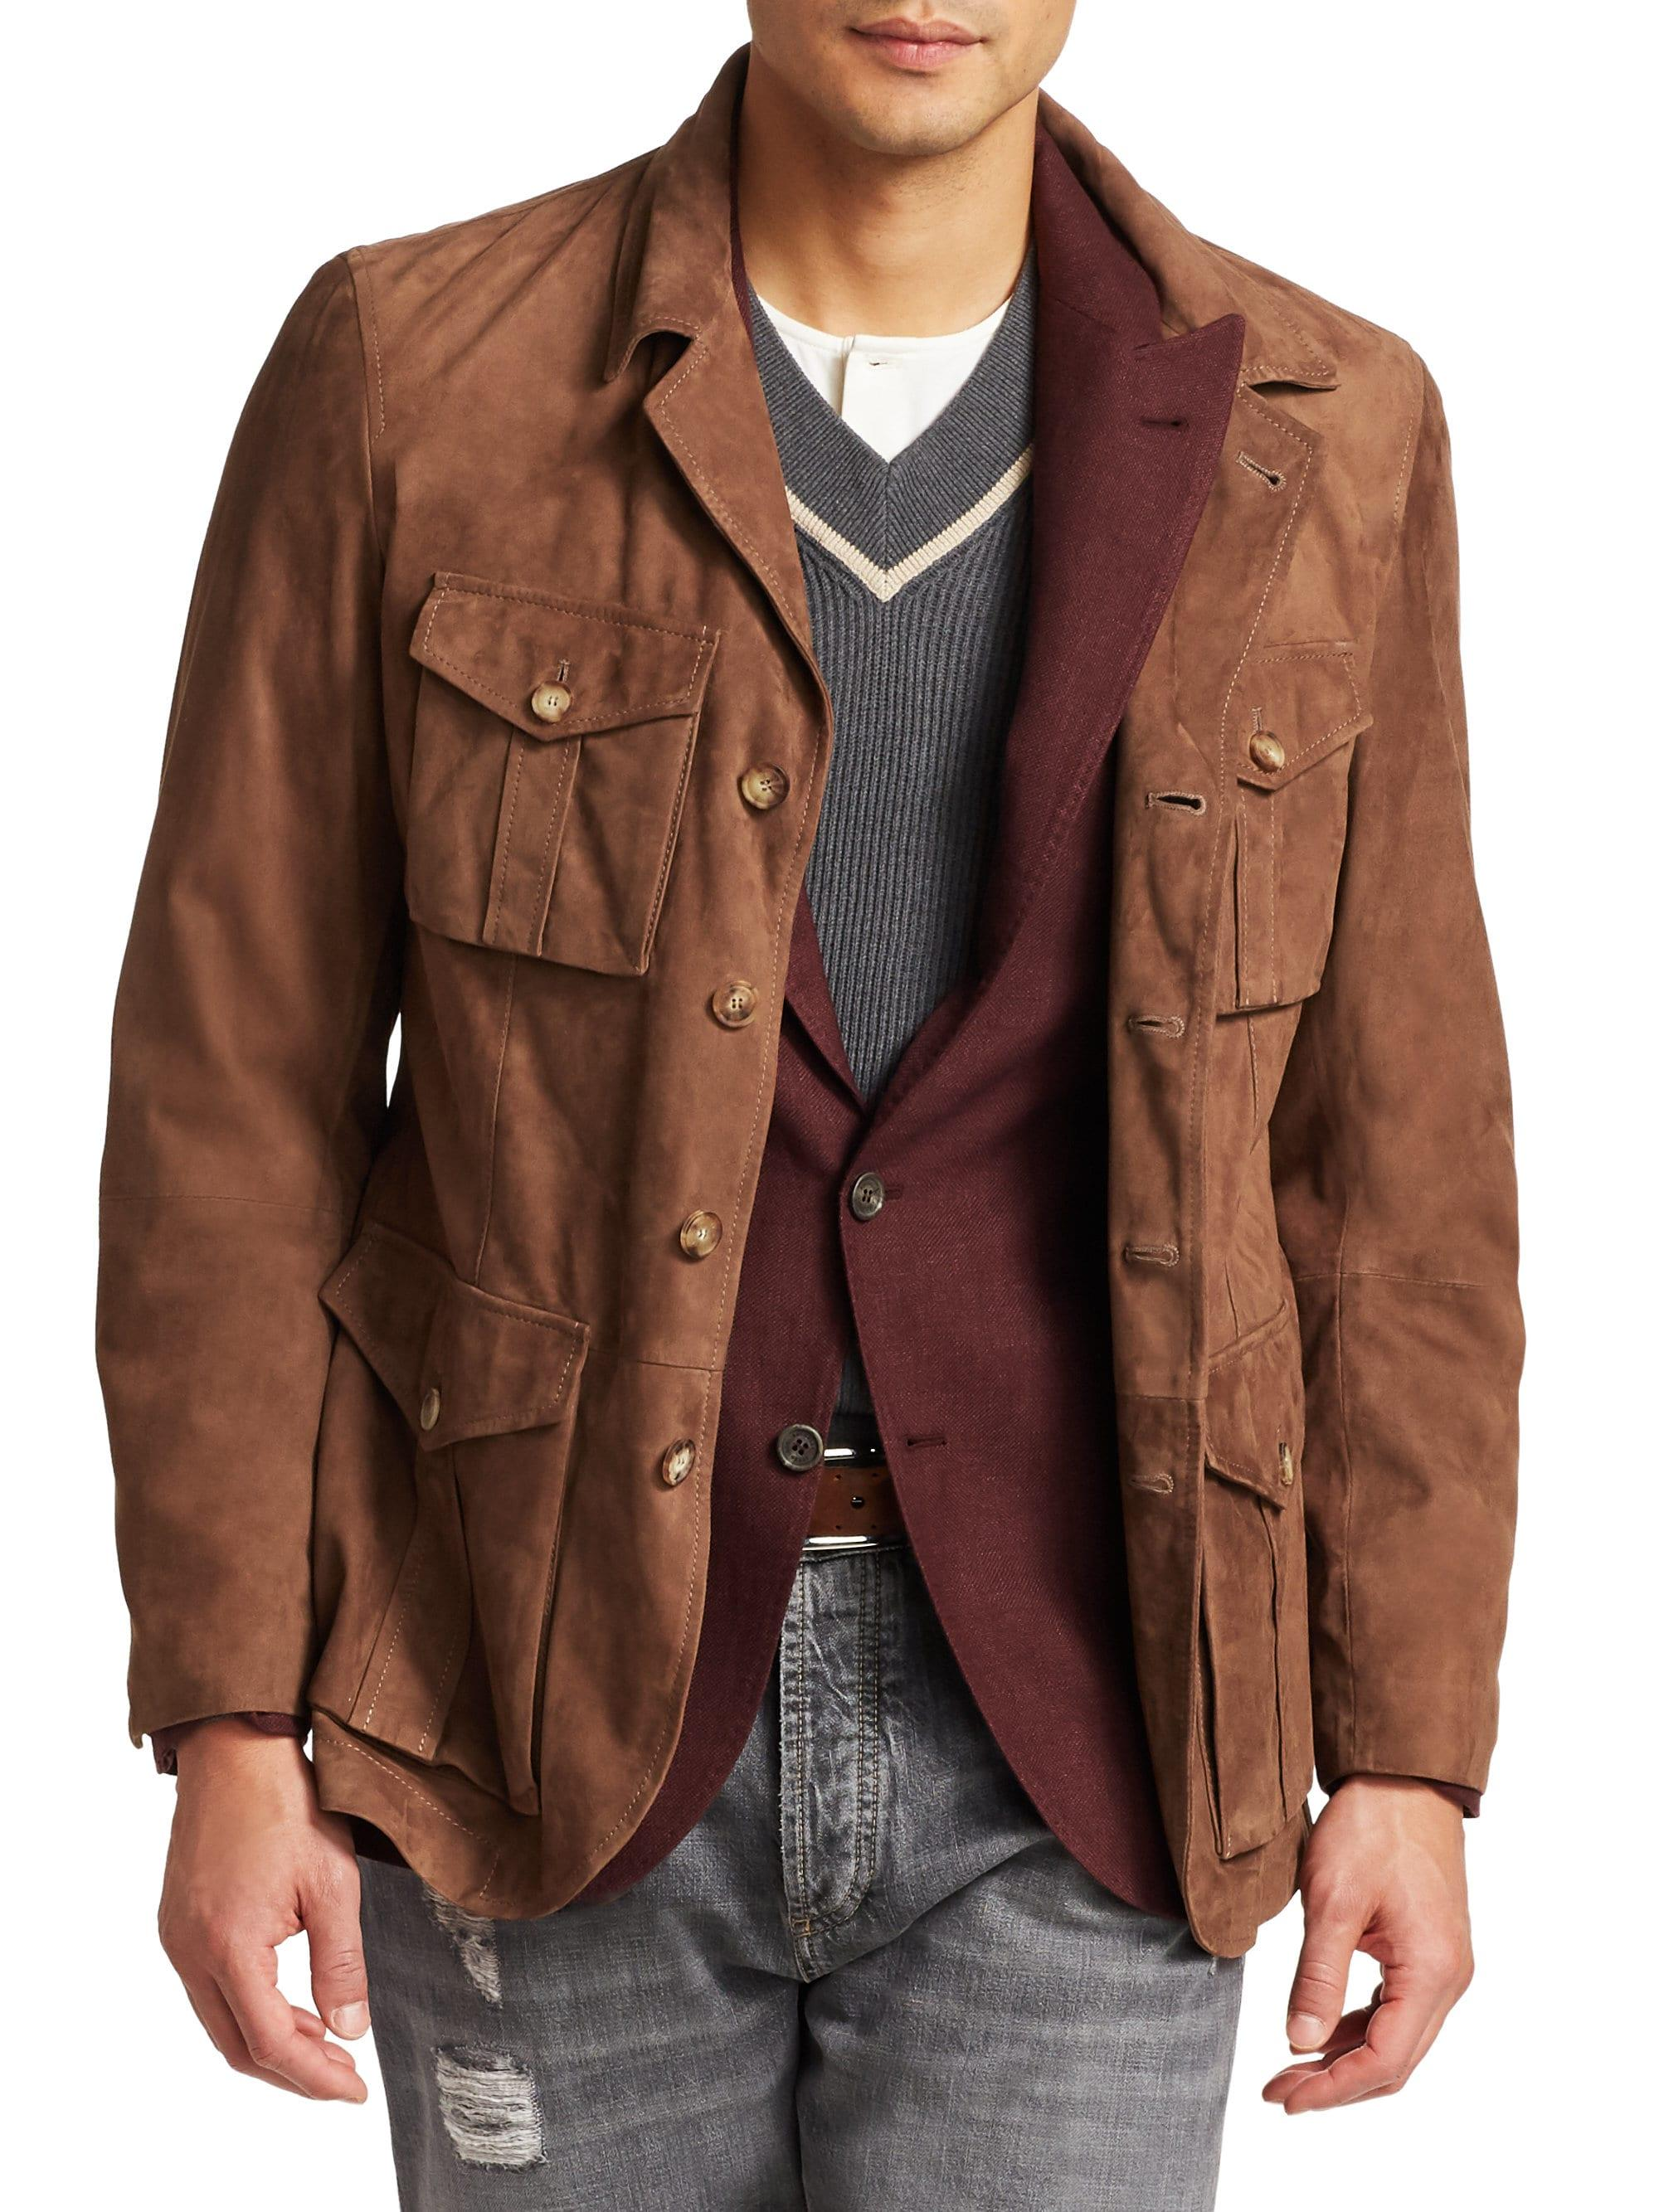 Lyst Brunello Cucinelli Men S Suede Safari Jacket Walnut In